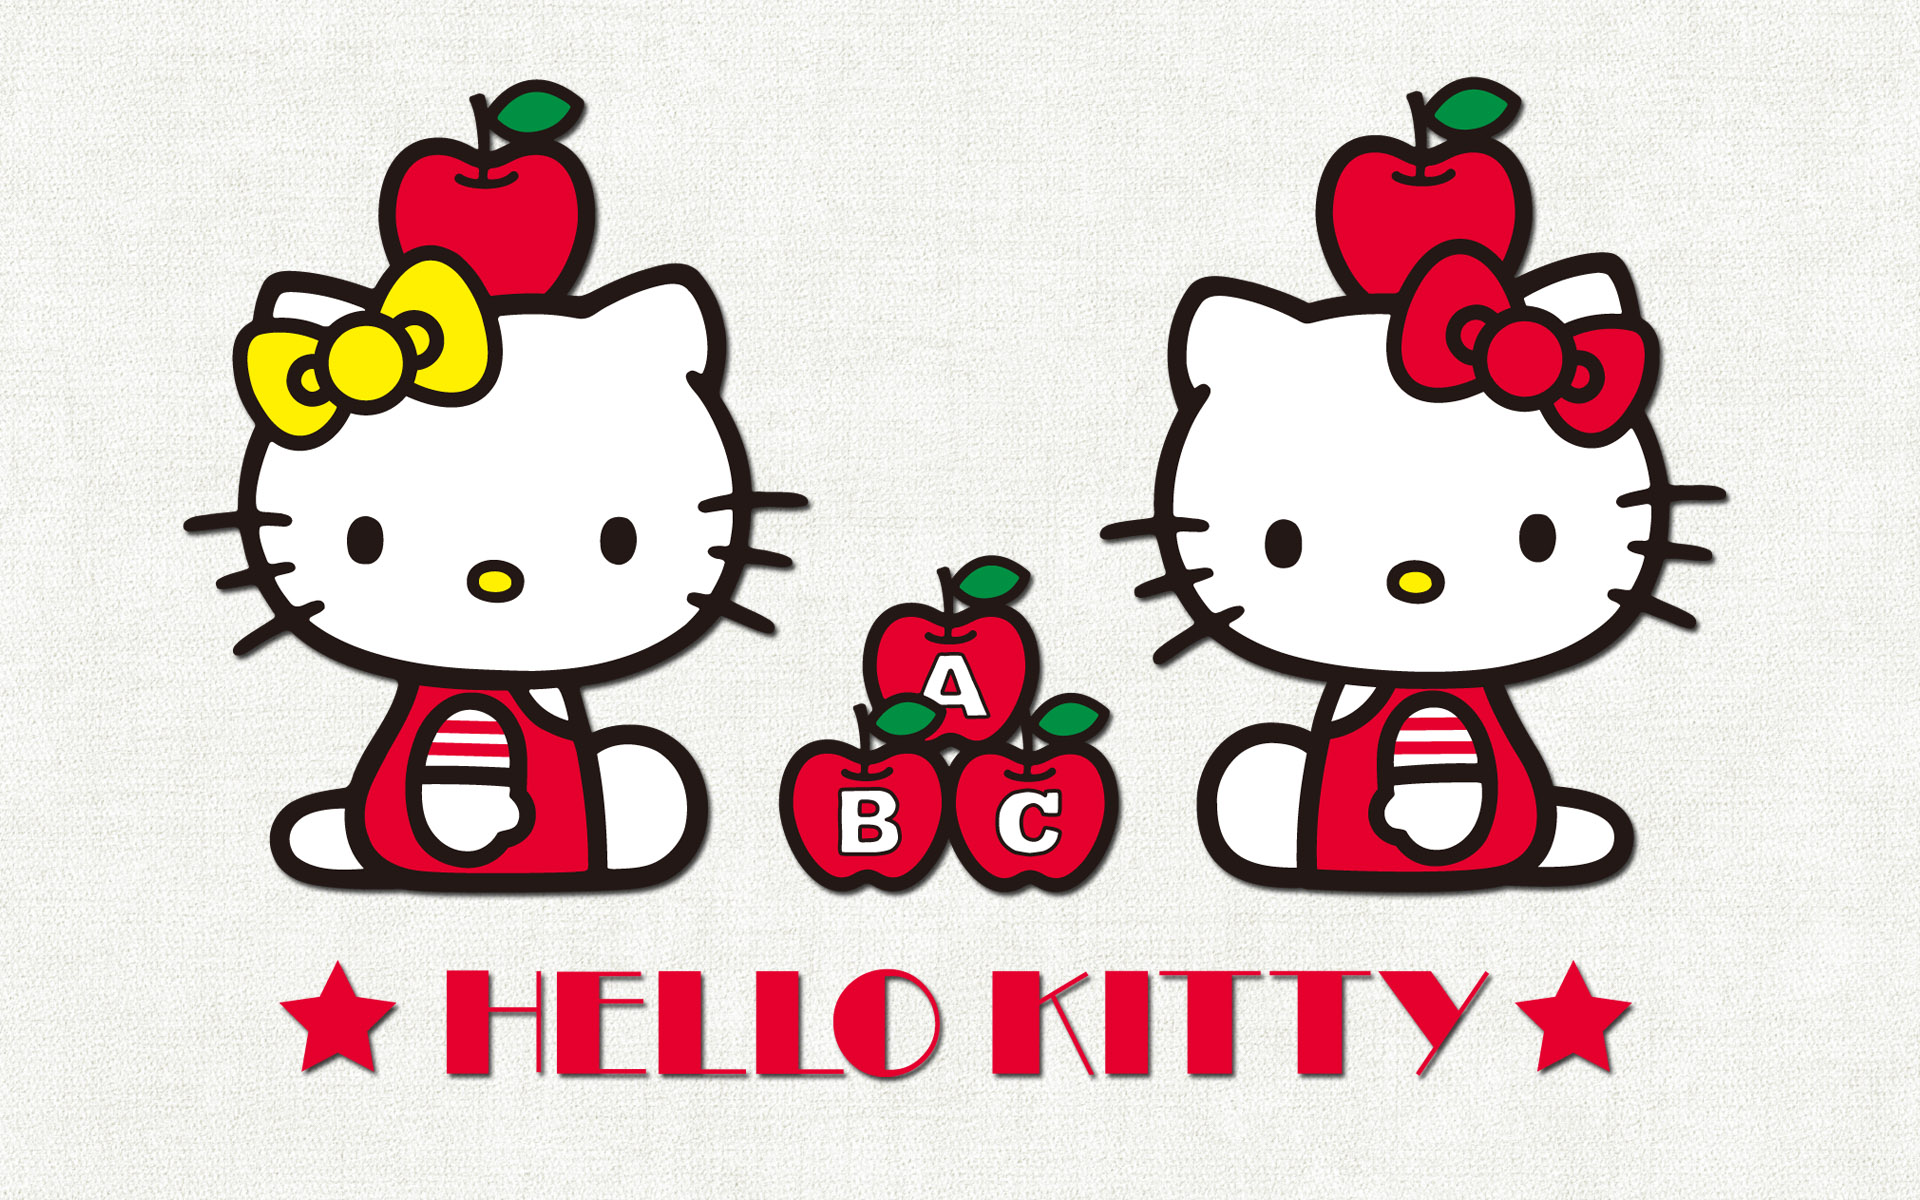 wallpapers screen savers kitty hello screensavers images 1920x1200